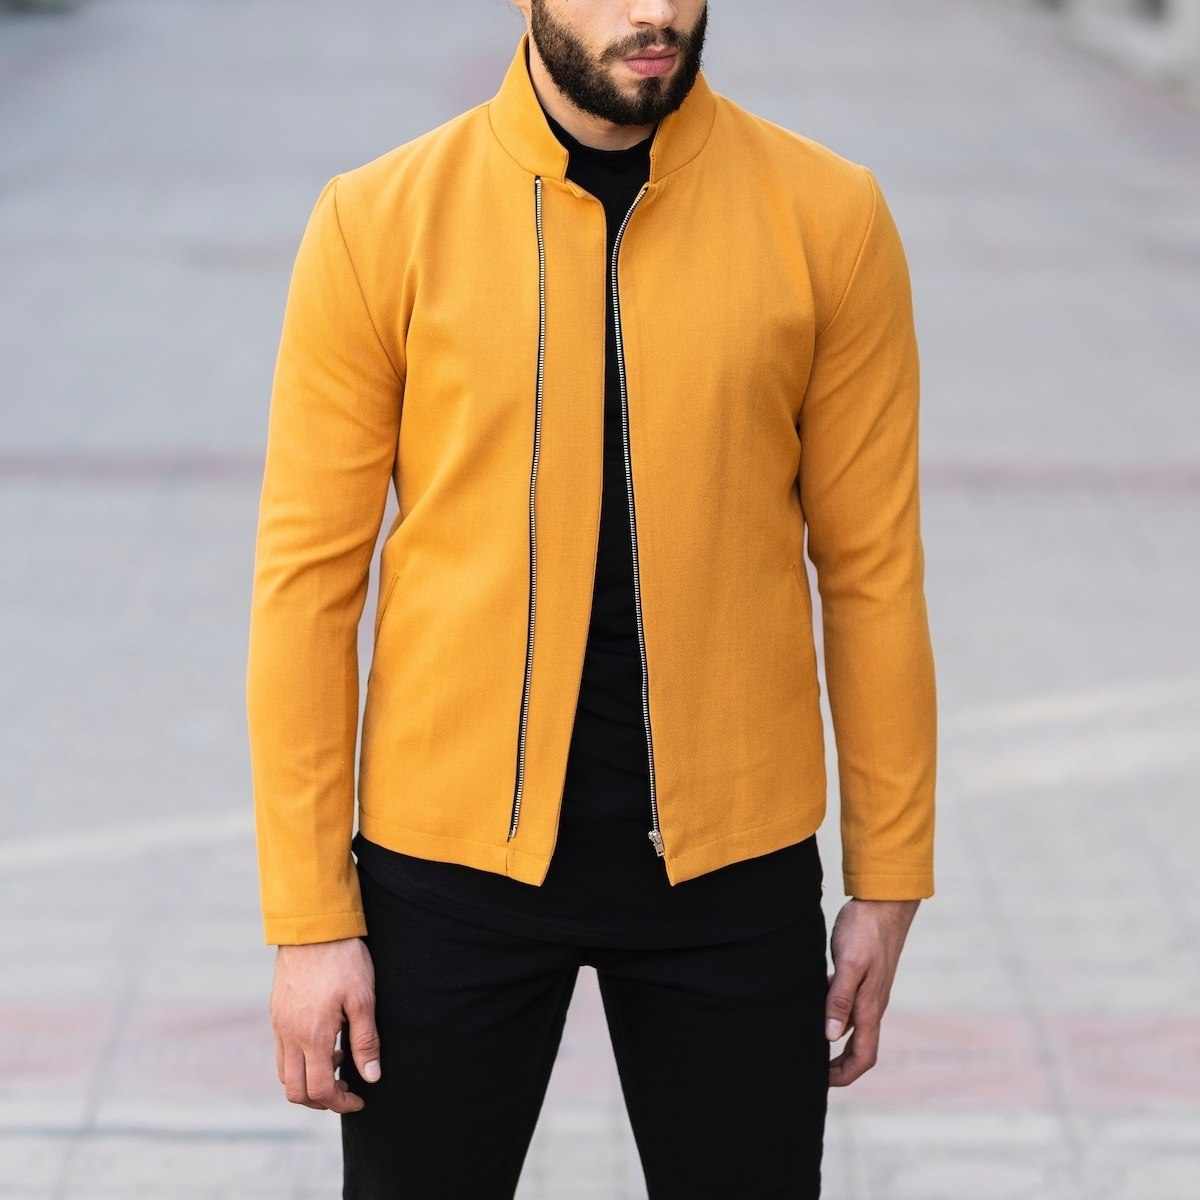 Yellow Autumn Collection Jacket MV Jacket Collection - 1